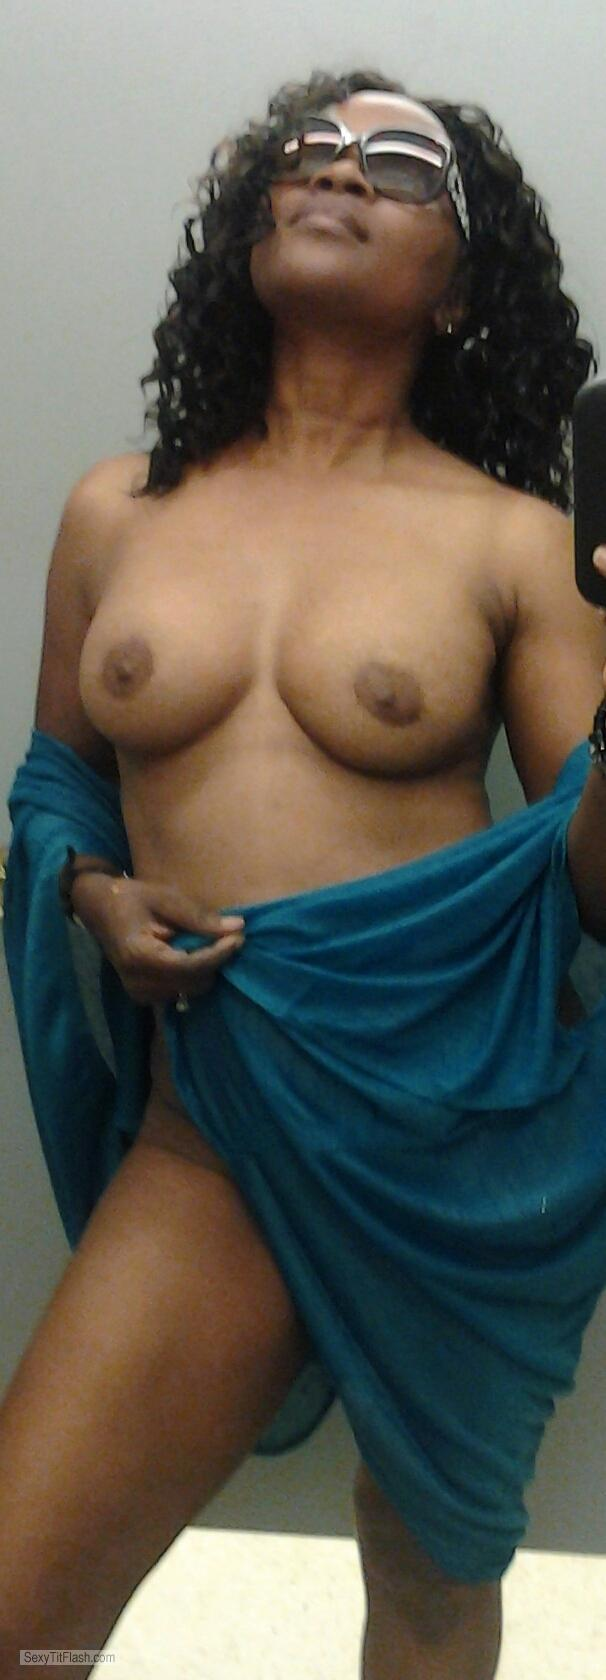 My Medium Tits Topless Selfie by Samantha